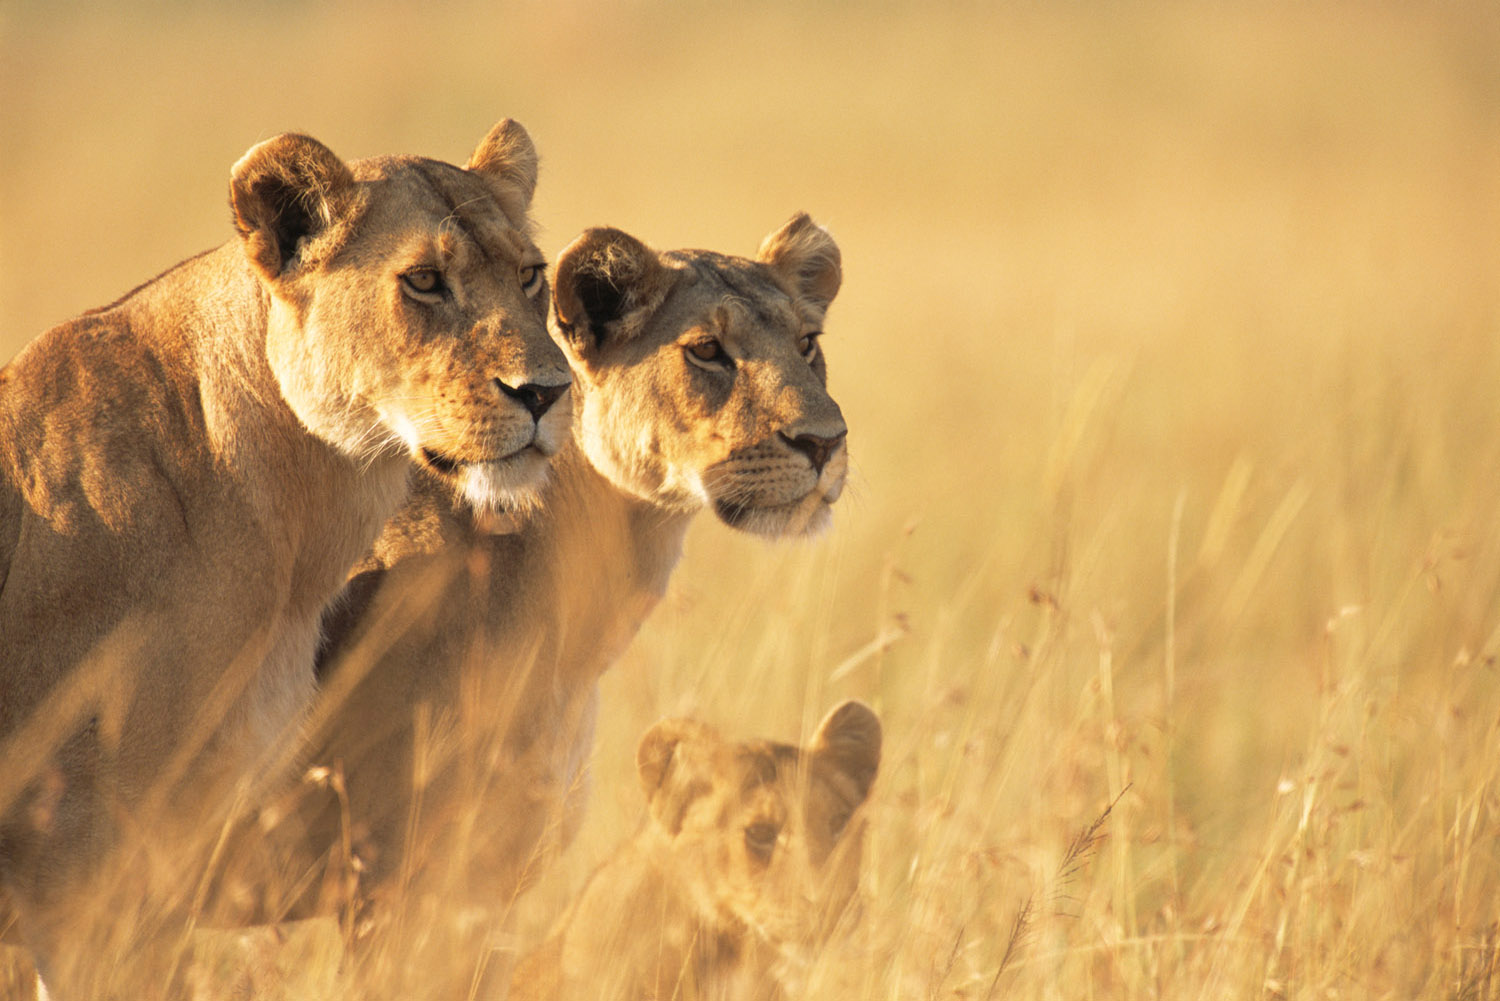 Lionesses on alert, Masai Mara National Reserve, Kenya